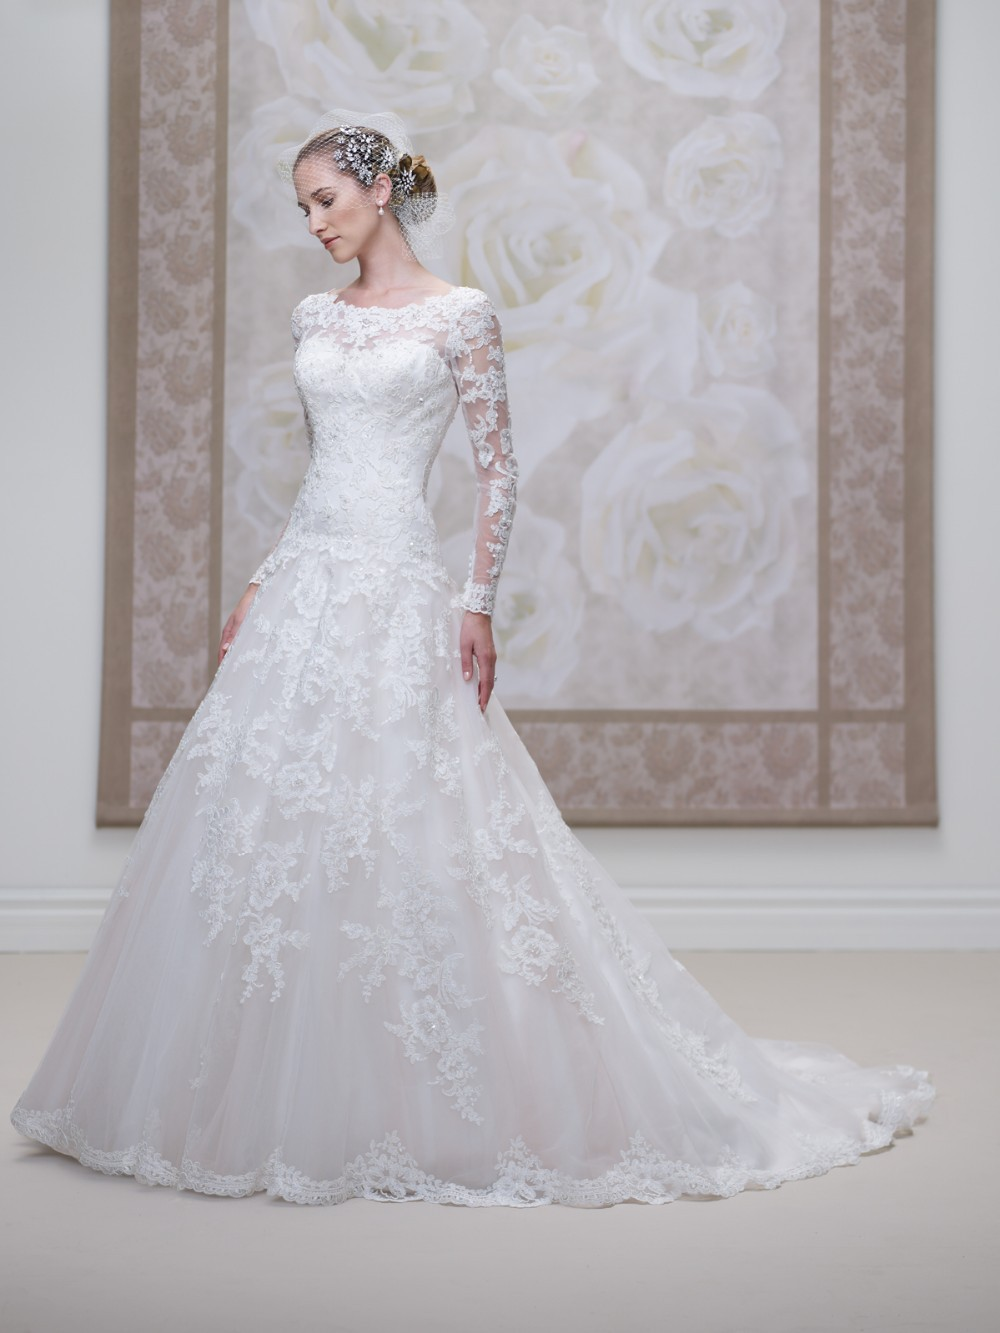 New Fashion Scoop Neckline Lace Applique Beading A-line Fabric Dropped Waist Bridal Gown 2018 Mother Of The Bride Dresses